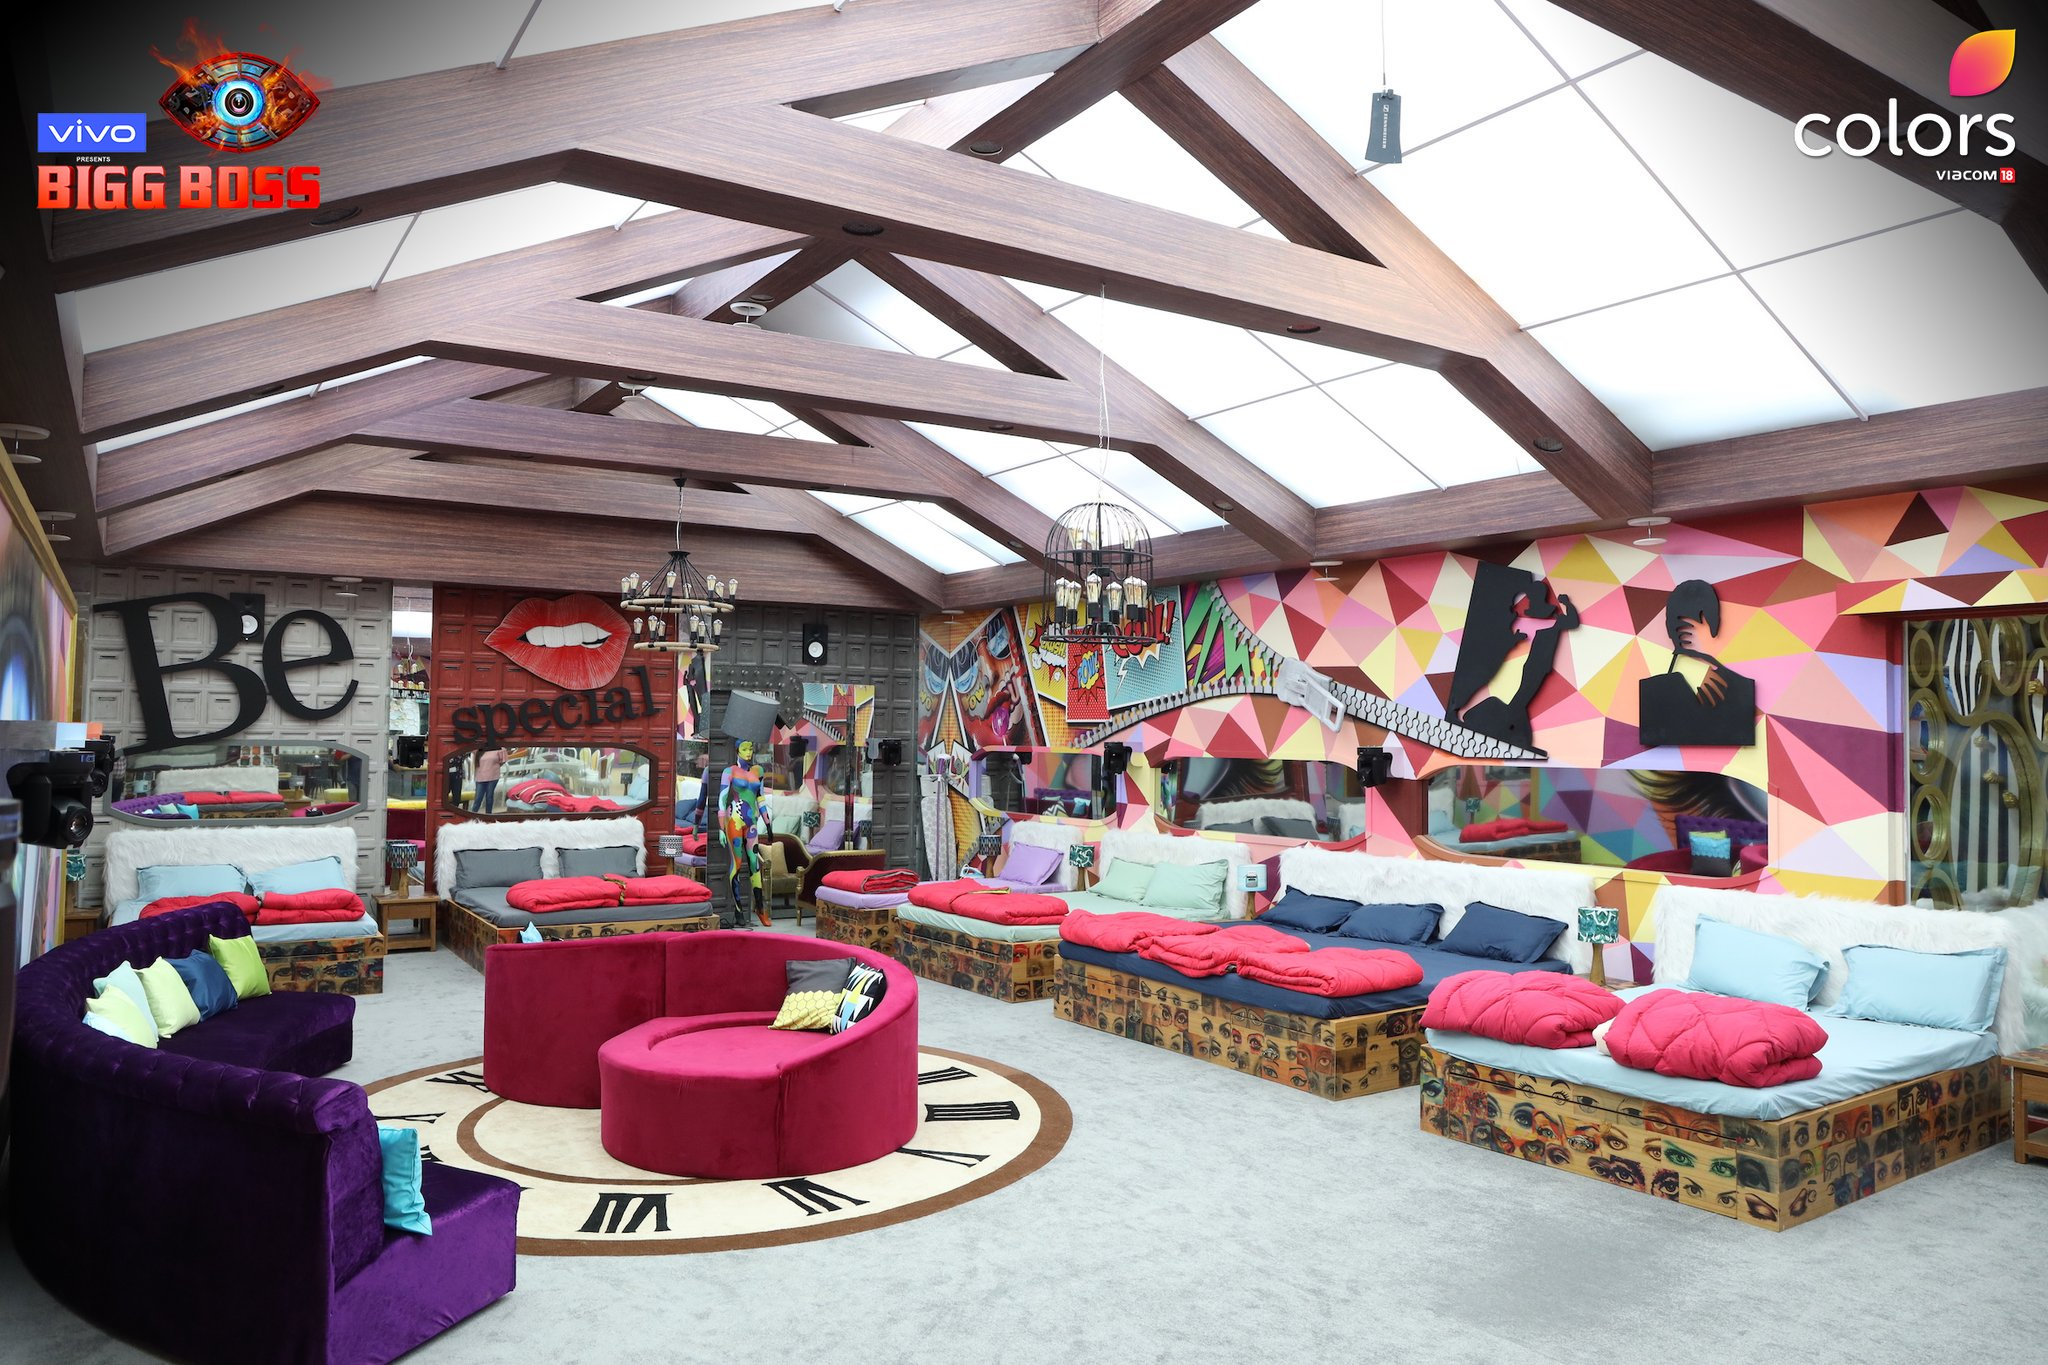 Bigg Boss 13 Bedroom